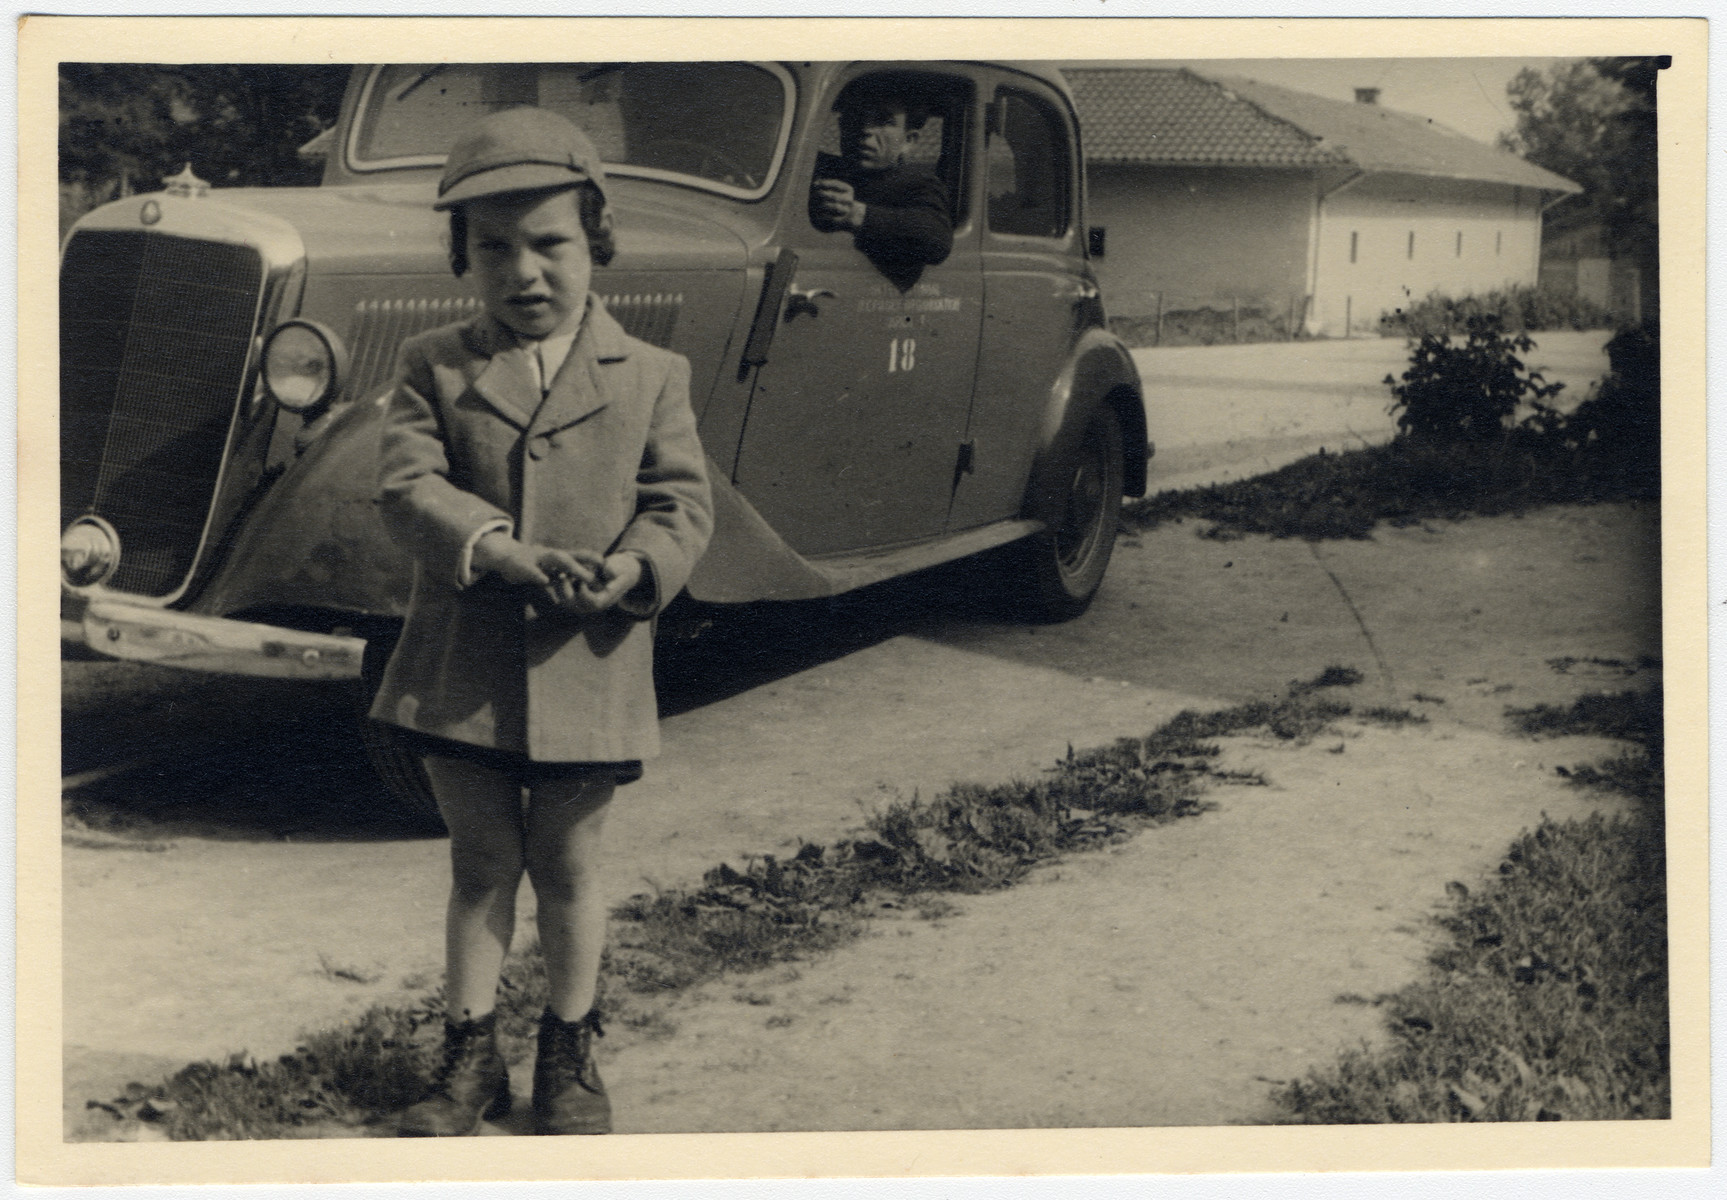 A young chassidic child stands in front of an automobile in an unidentified displaced persons camp.